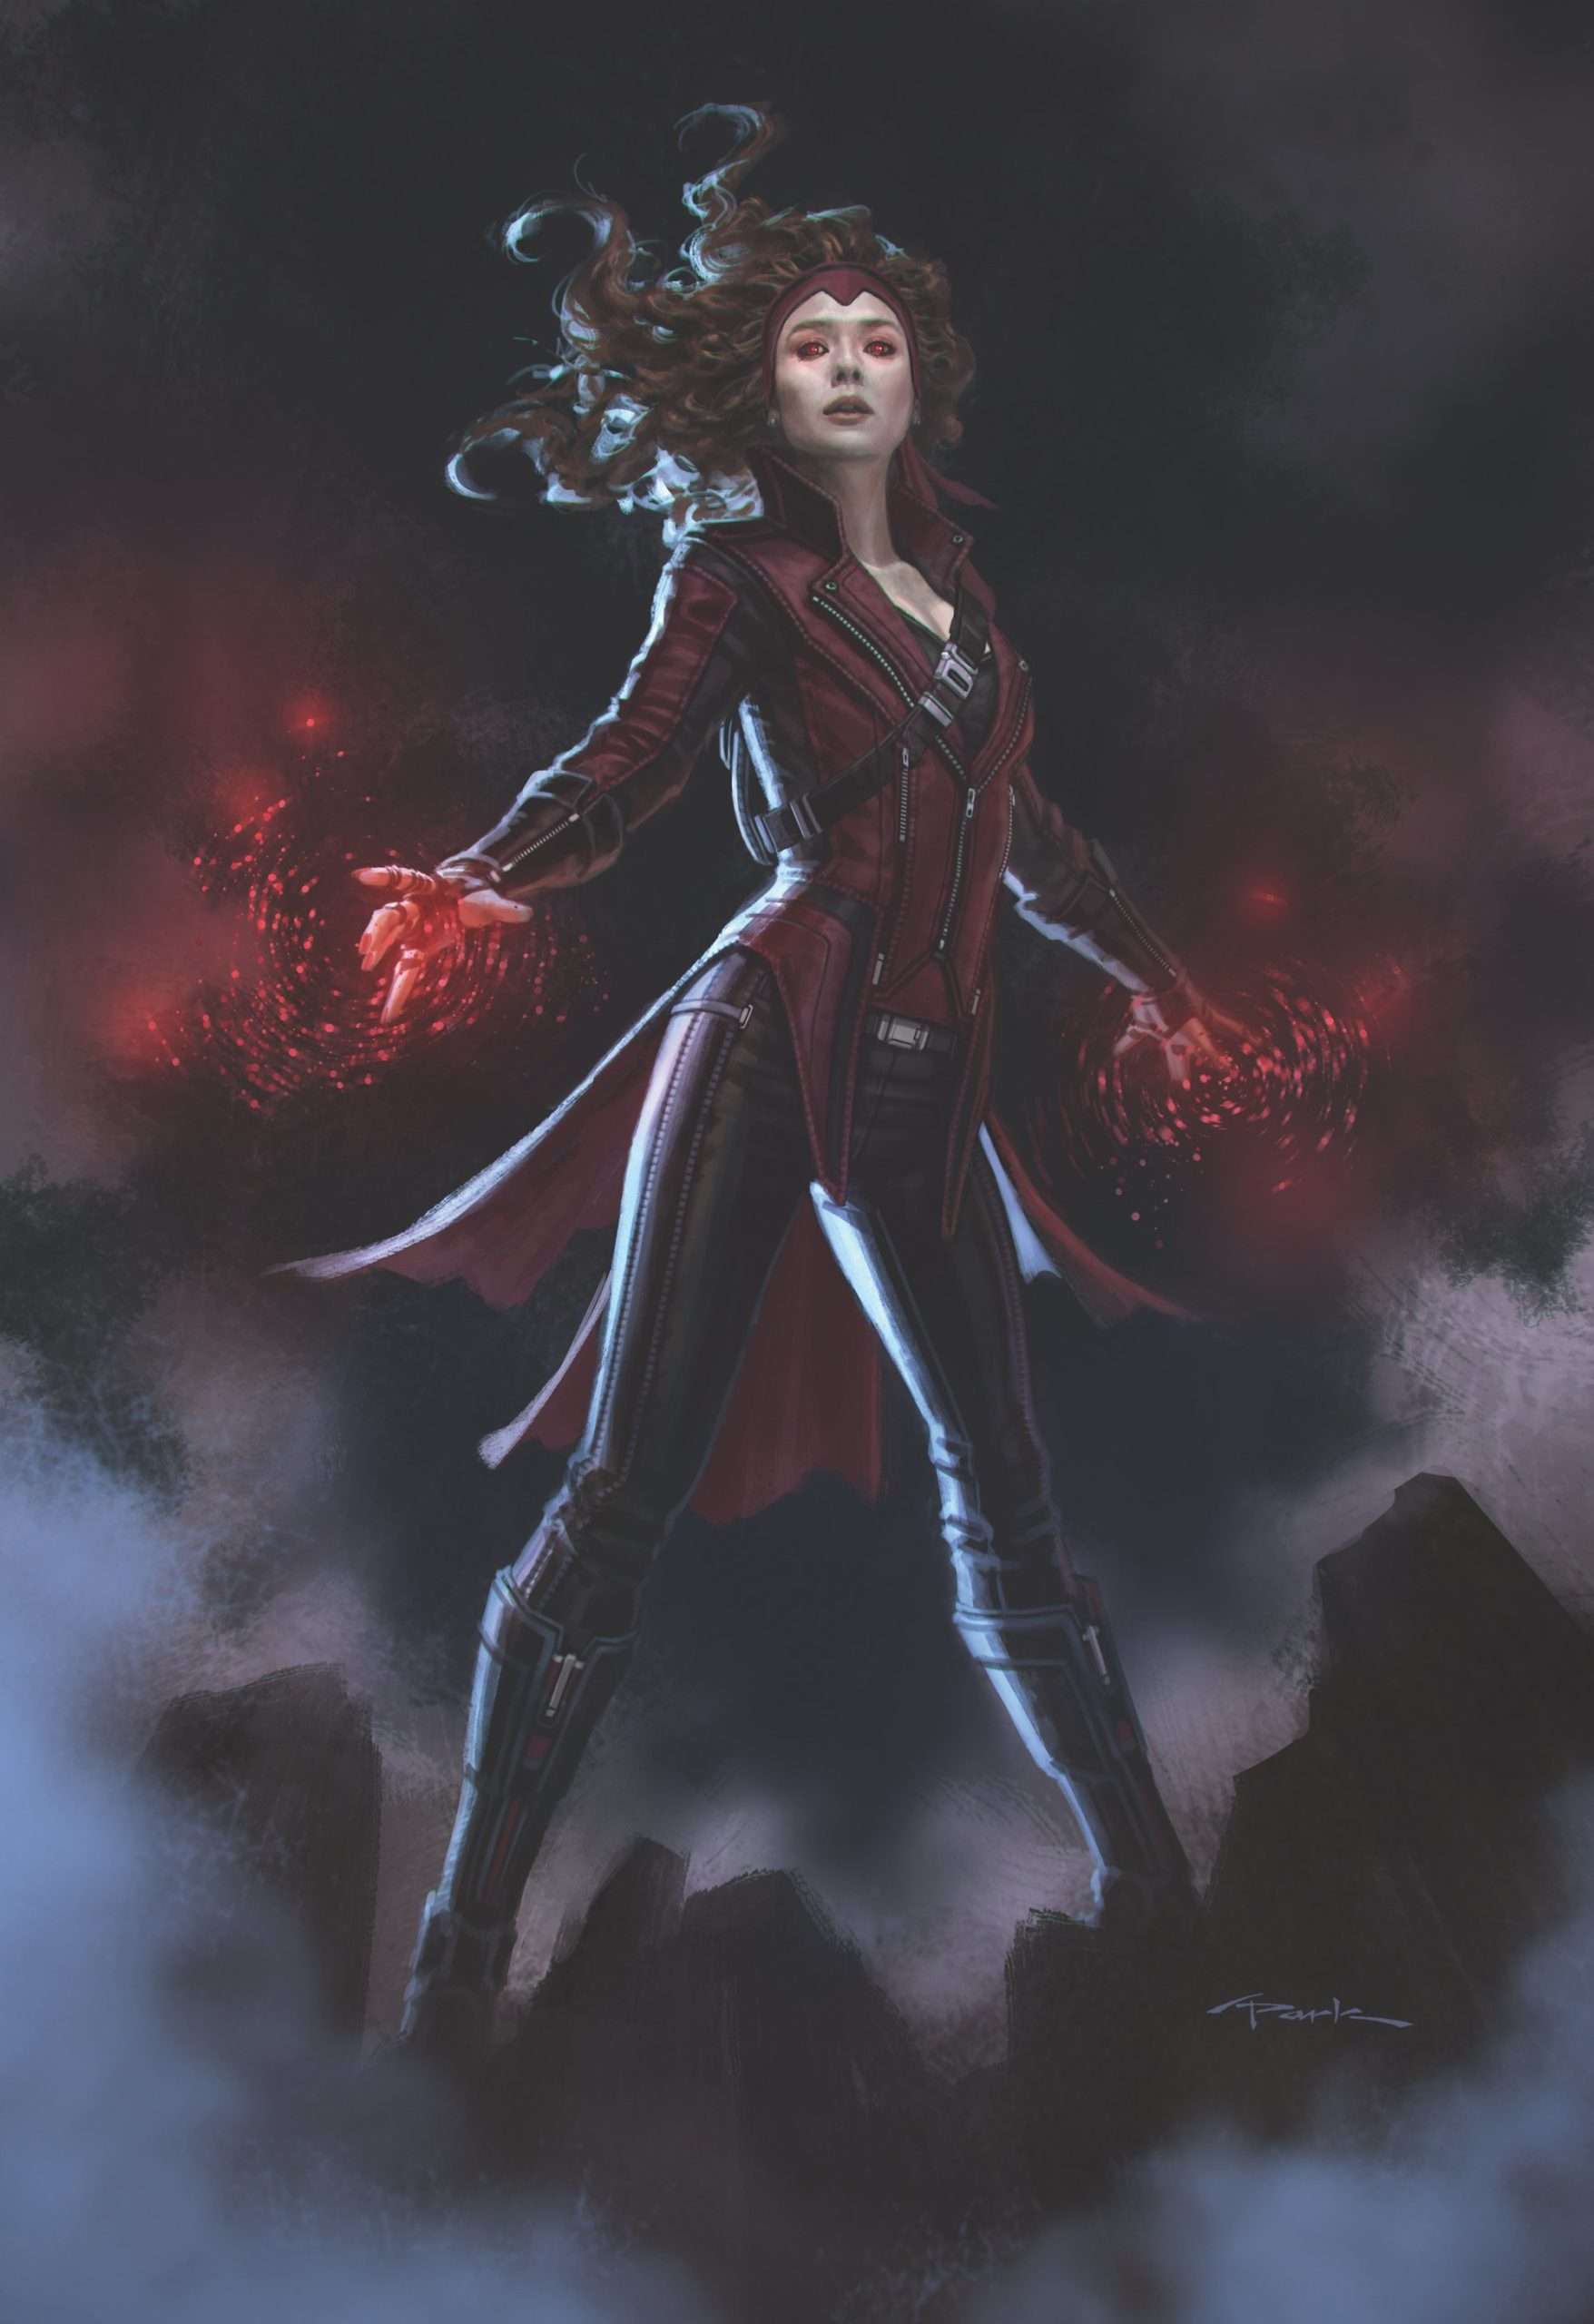 Concept art de Captain America: Civil War avec Scarlet Witch